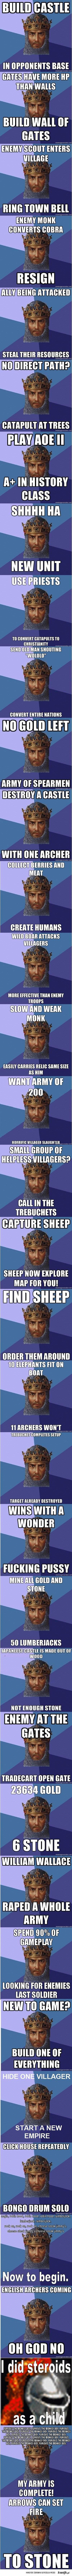 Some of the Age of Empires II rules. This is awesome!